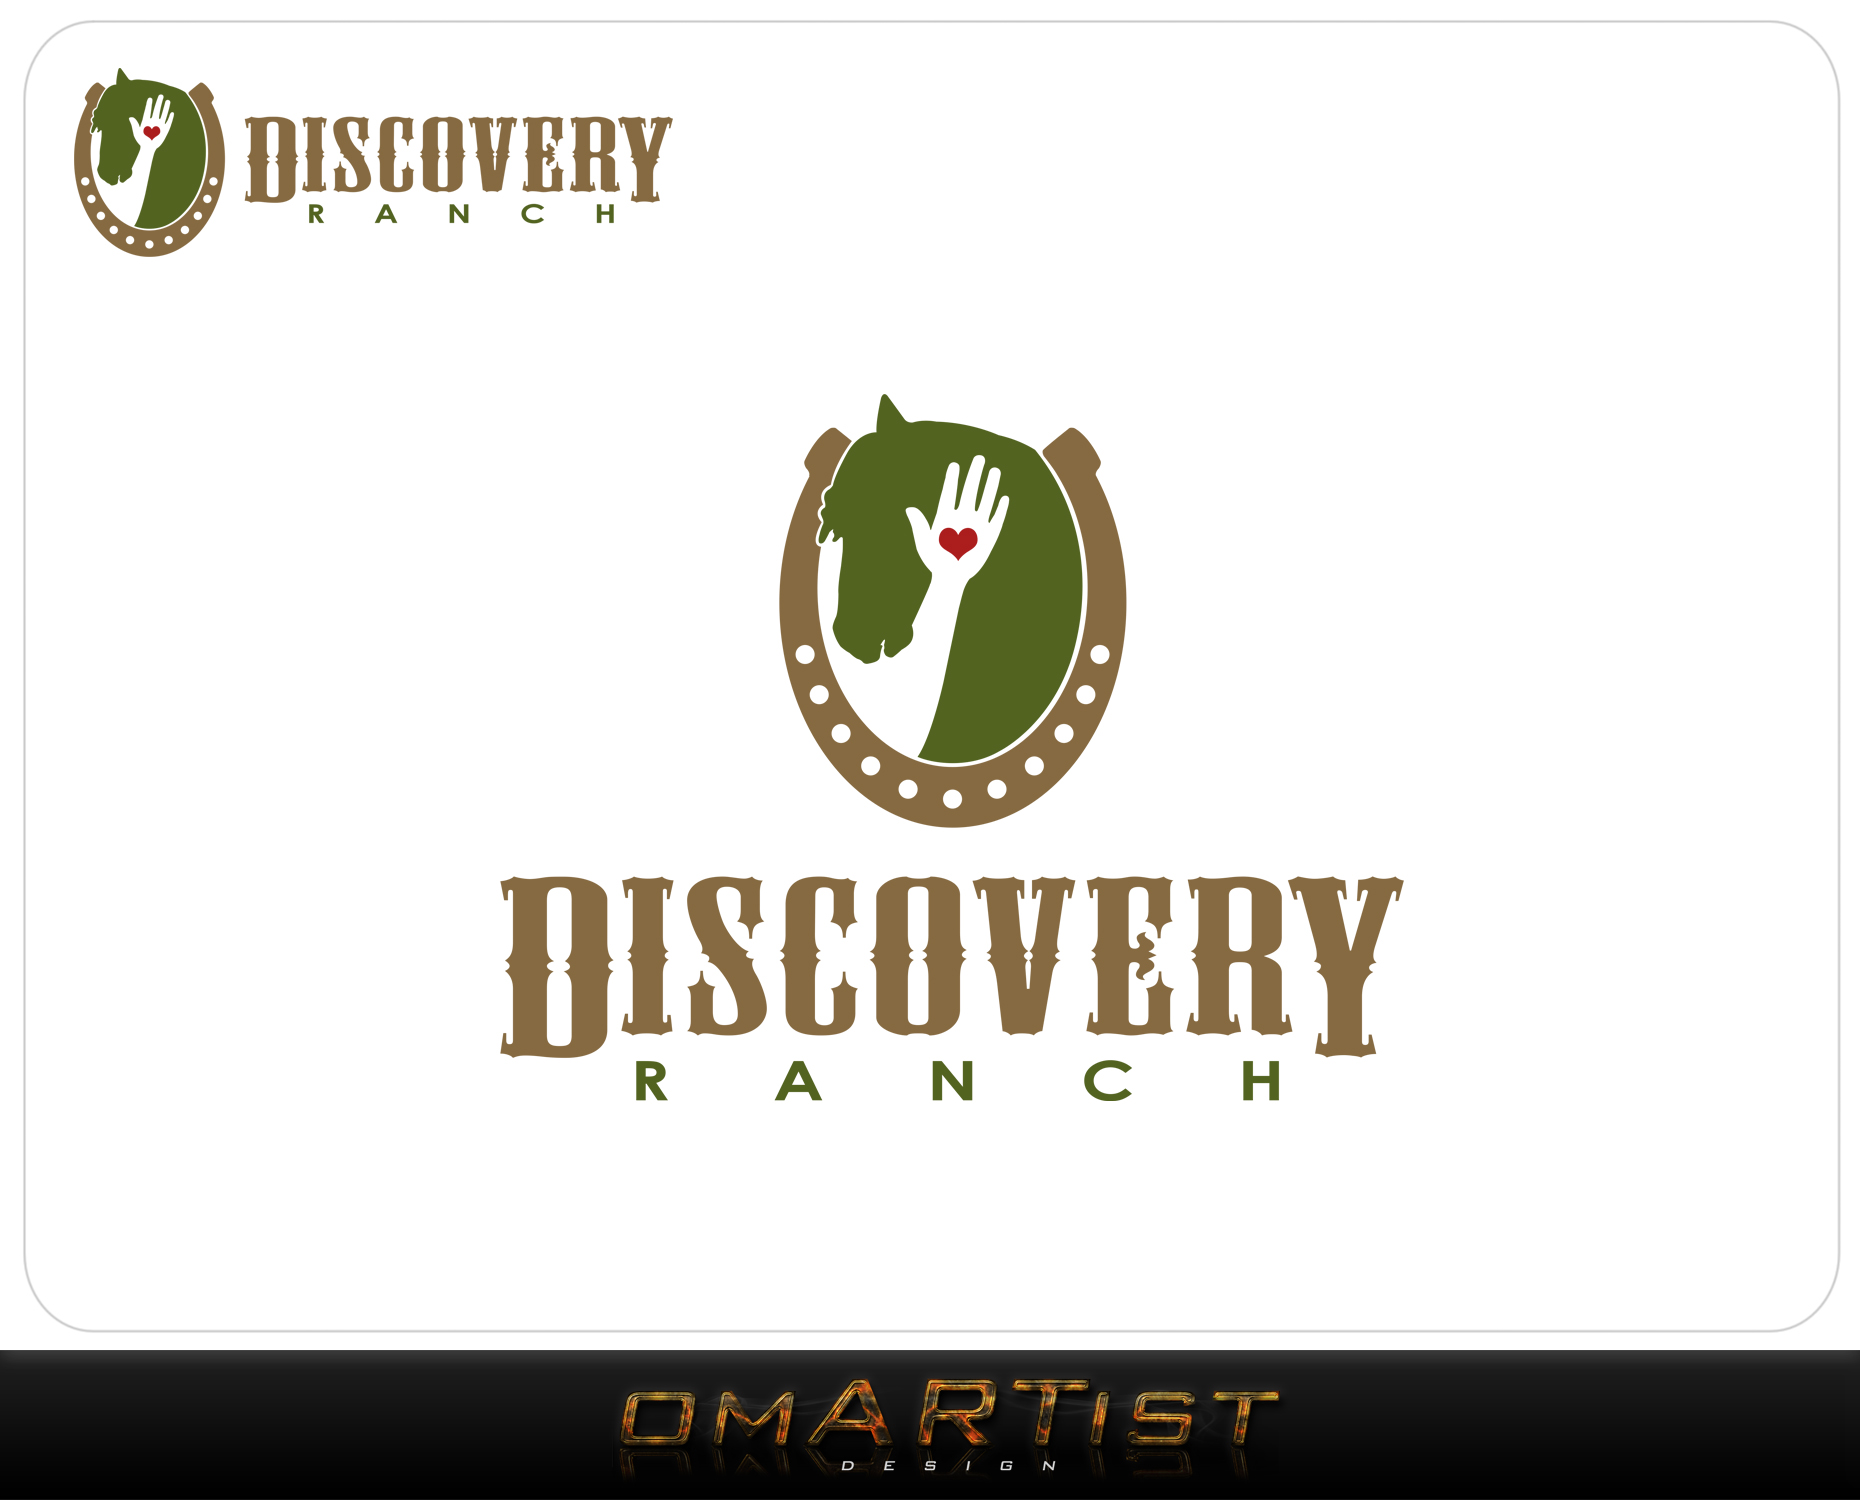 Logo Design by omARTist - Entry No. 129 in the Logo Design Contest Creative Logo Design for Discovery Ranch.